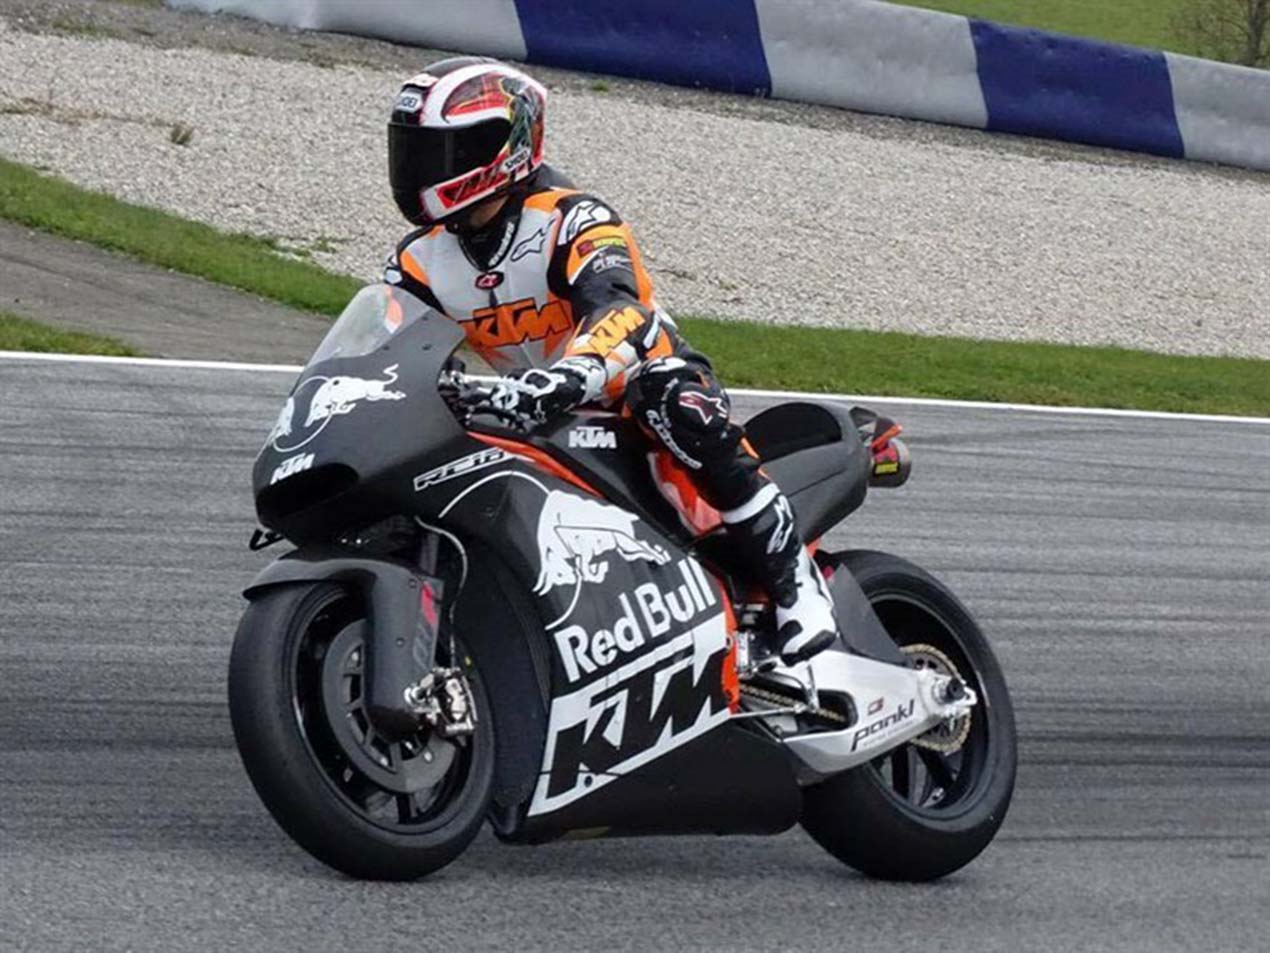 First Photos of the KTM RC16 MotoGP Race Bike Race Bike Photos